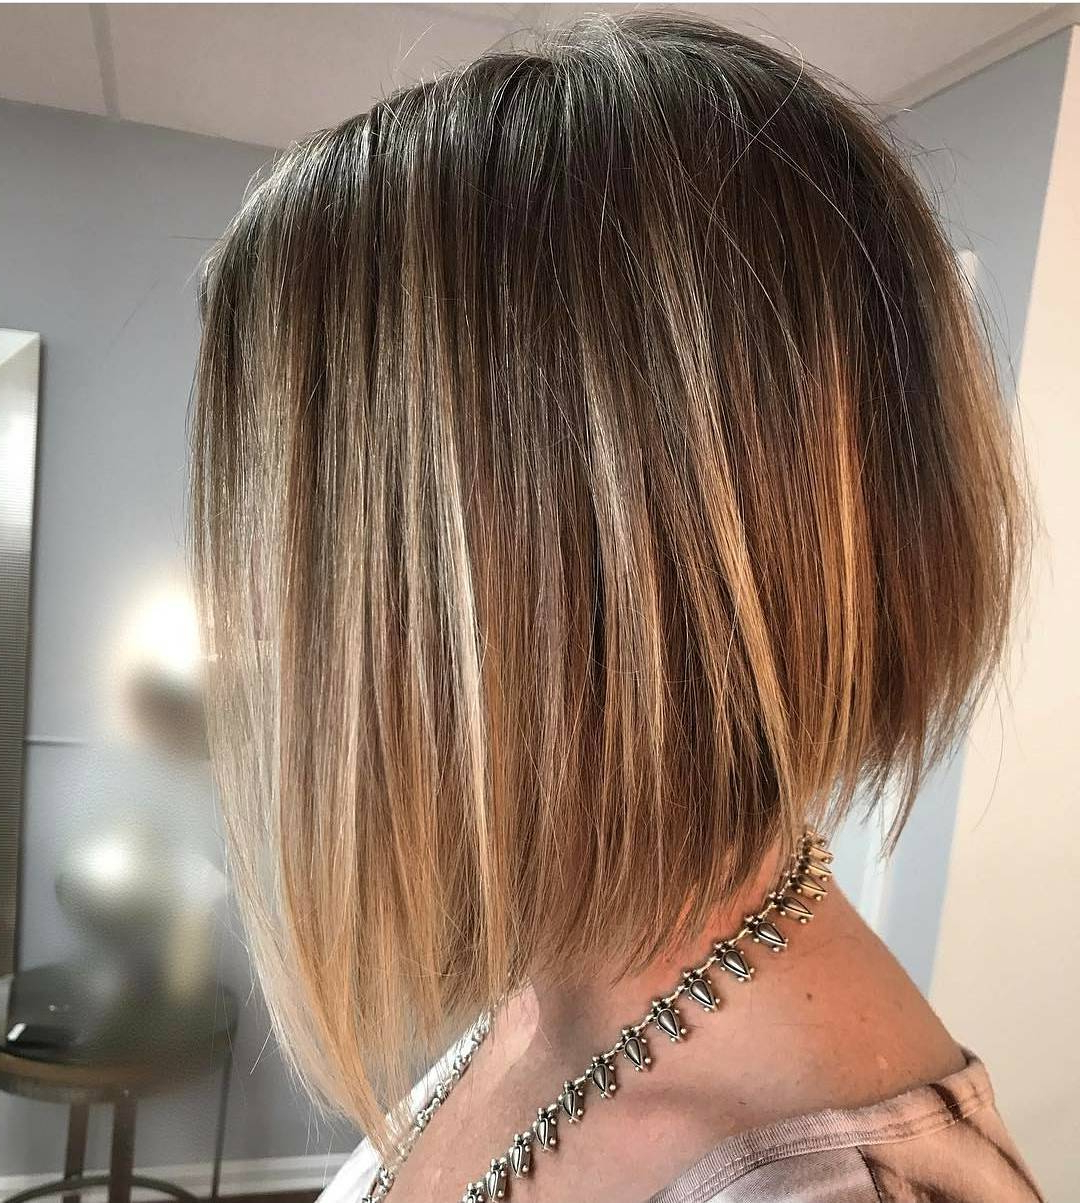 Current Forward Swept Straight Shag Haircuts In 10 Flattering Short Straight Hairstyles (View 13 of 20)